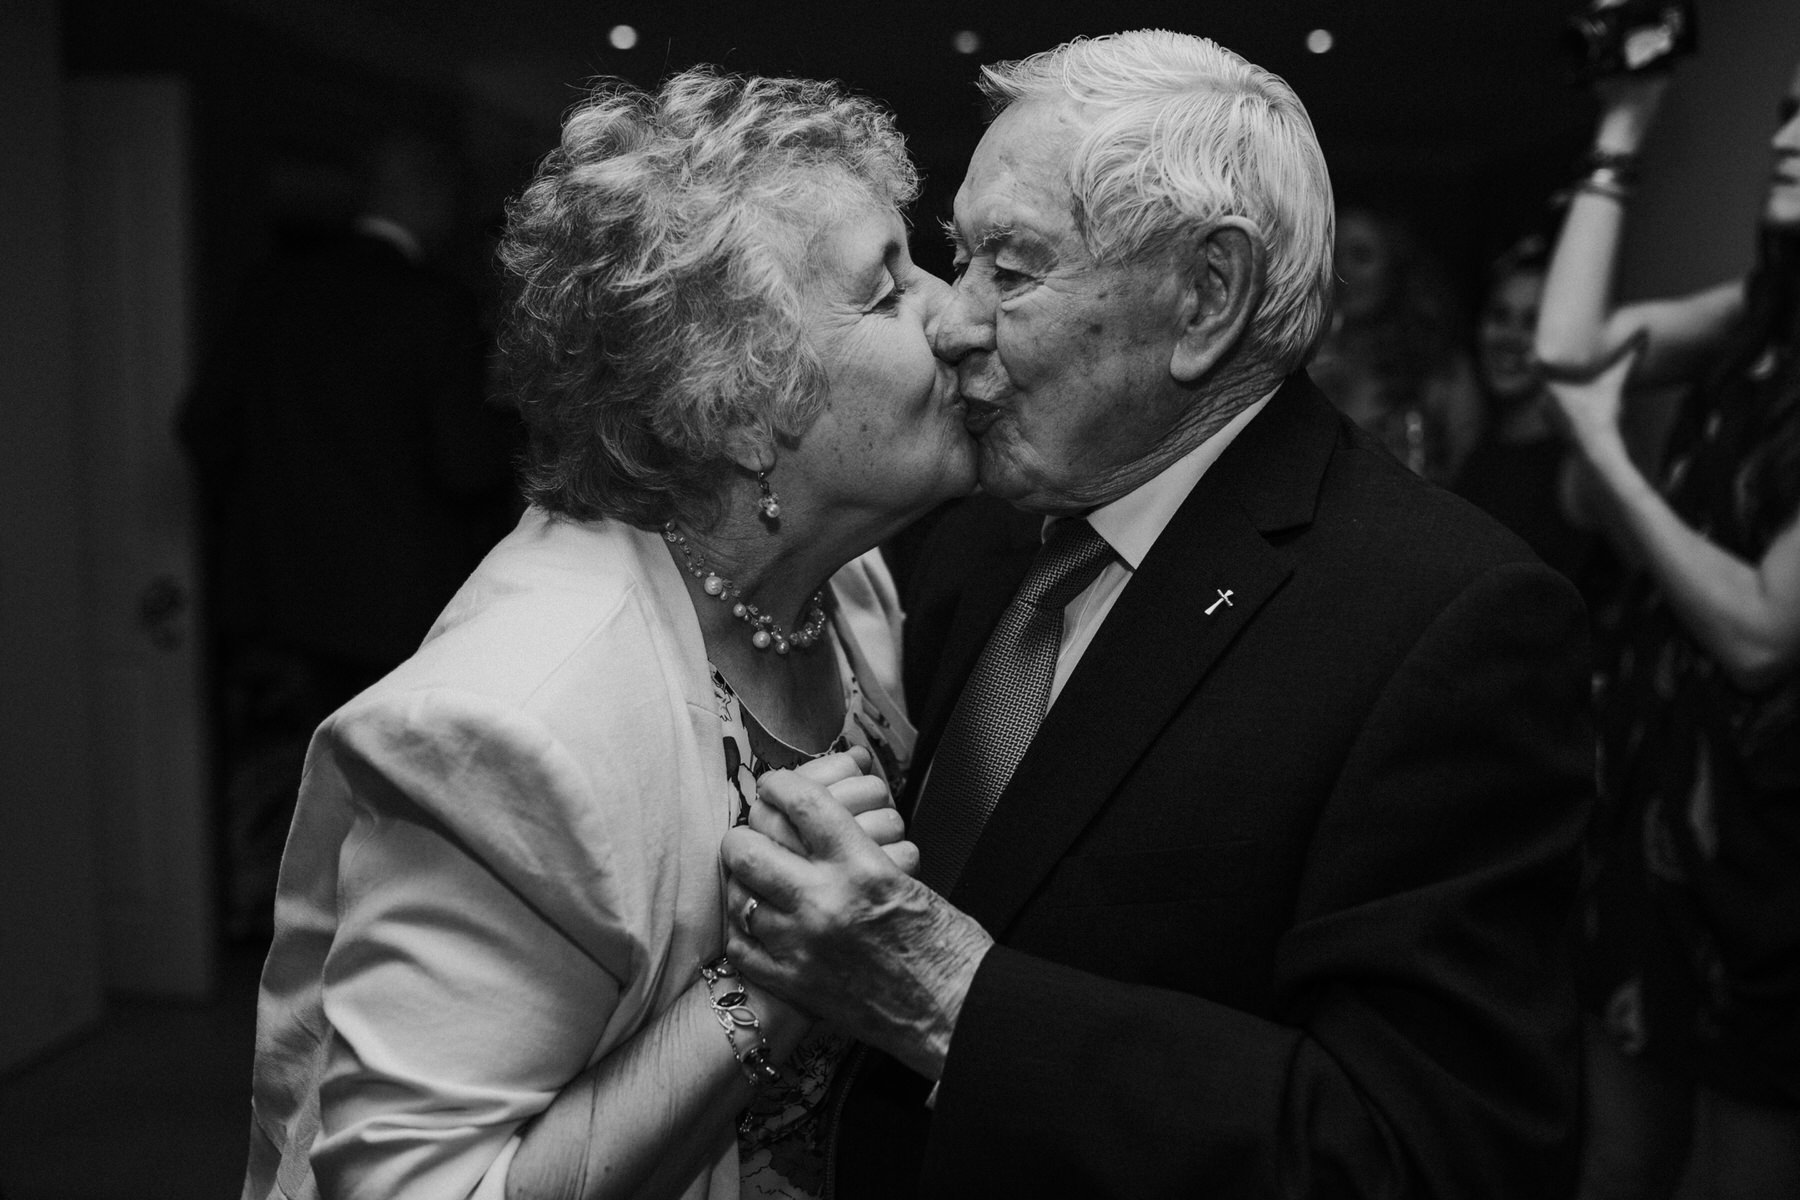 Bingham Hotel Richmond wedding grandparents kissing on dance floor.jpg